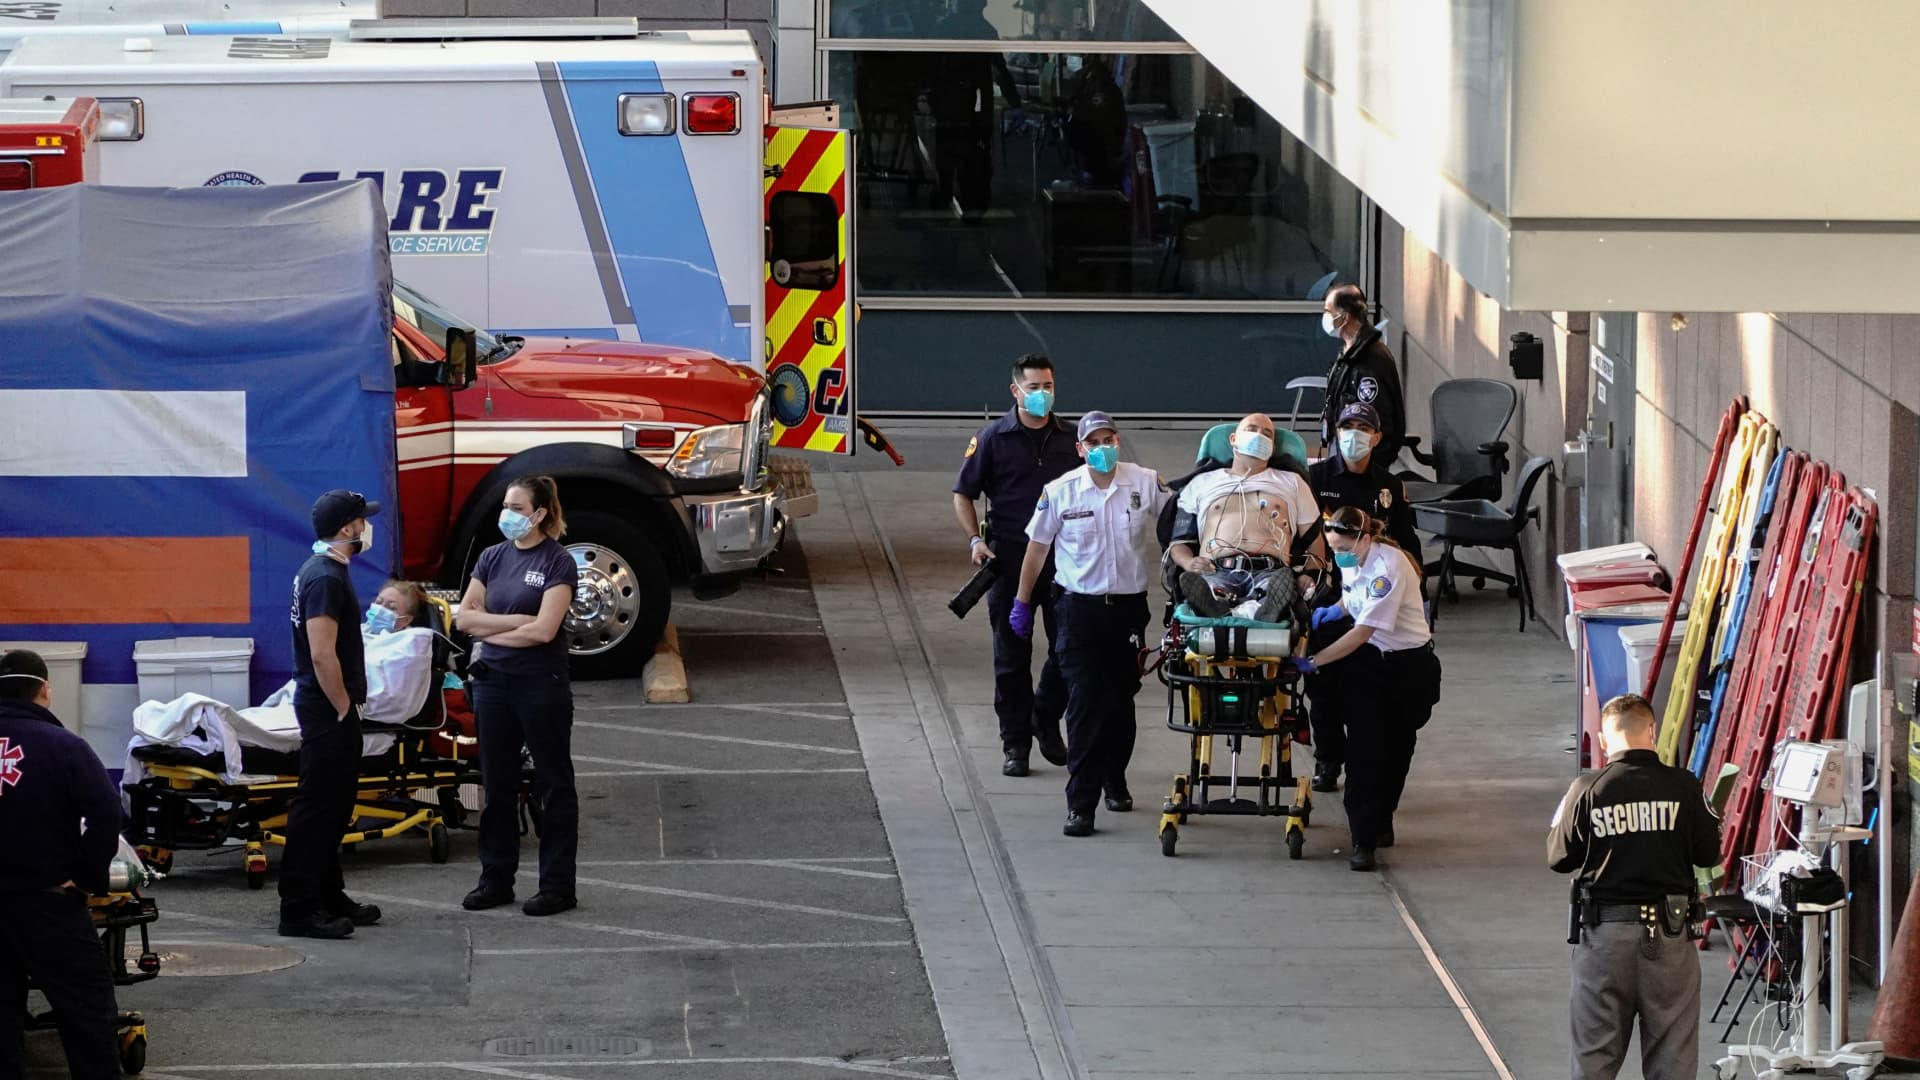 Paramedics escort a patient from the ambulance entrance to the emergency room at LAC + USC Medical Center during a surge of coronavirus disease (COVID-19) cases in Los Angeles, California, December 27, 2020.